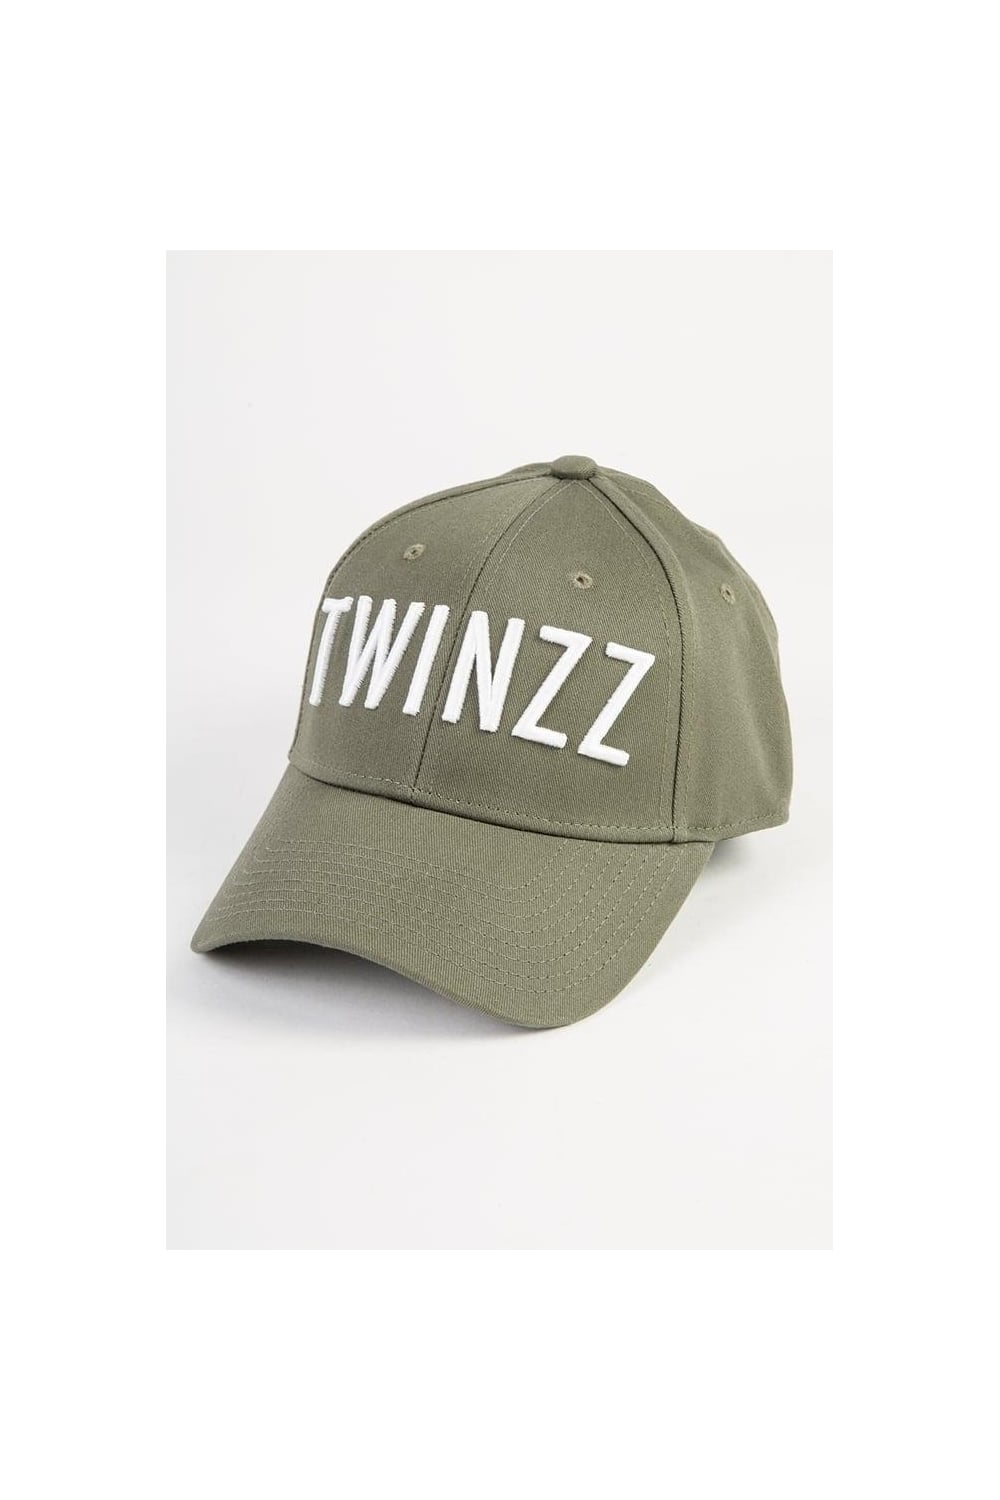 7d30d278d Twinzz | Harbor Twill Snapback in Khaki | Intro